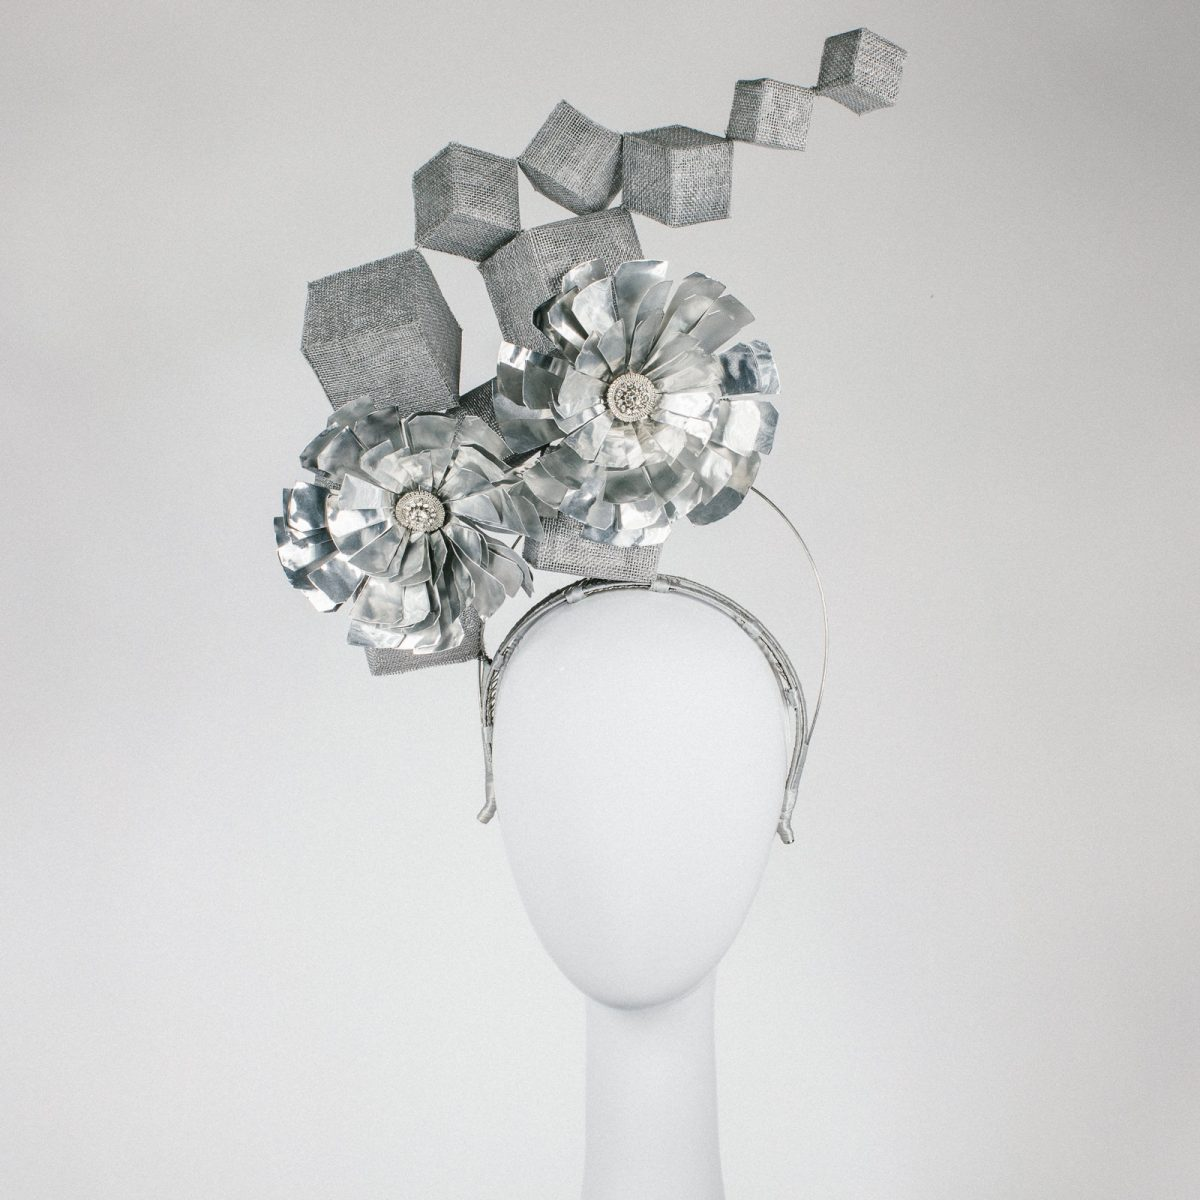 Unique one off Millinery Award Headpiece for sale